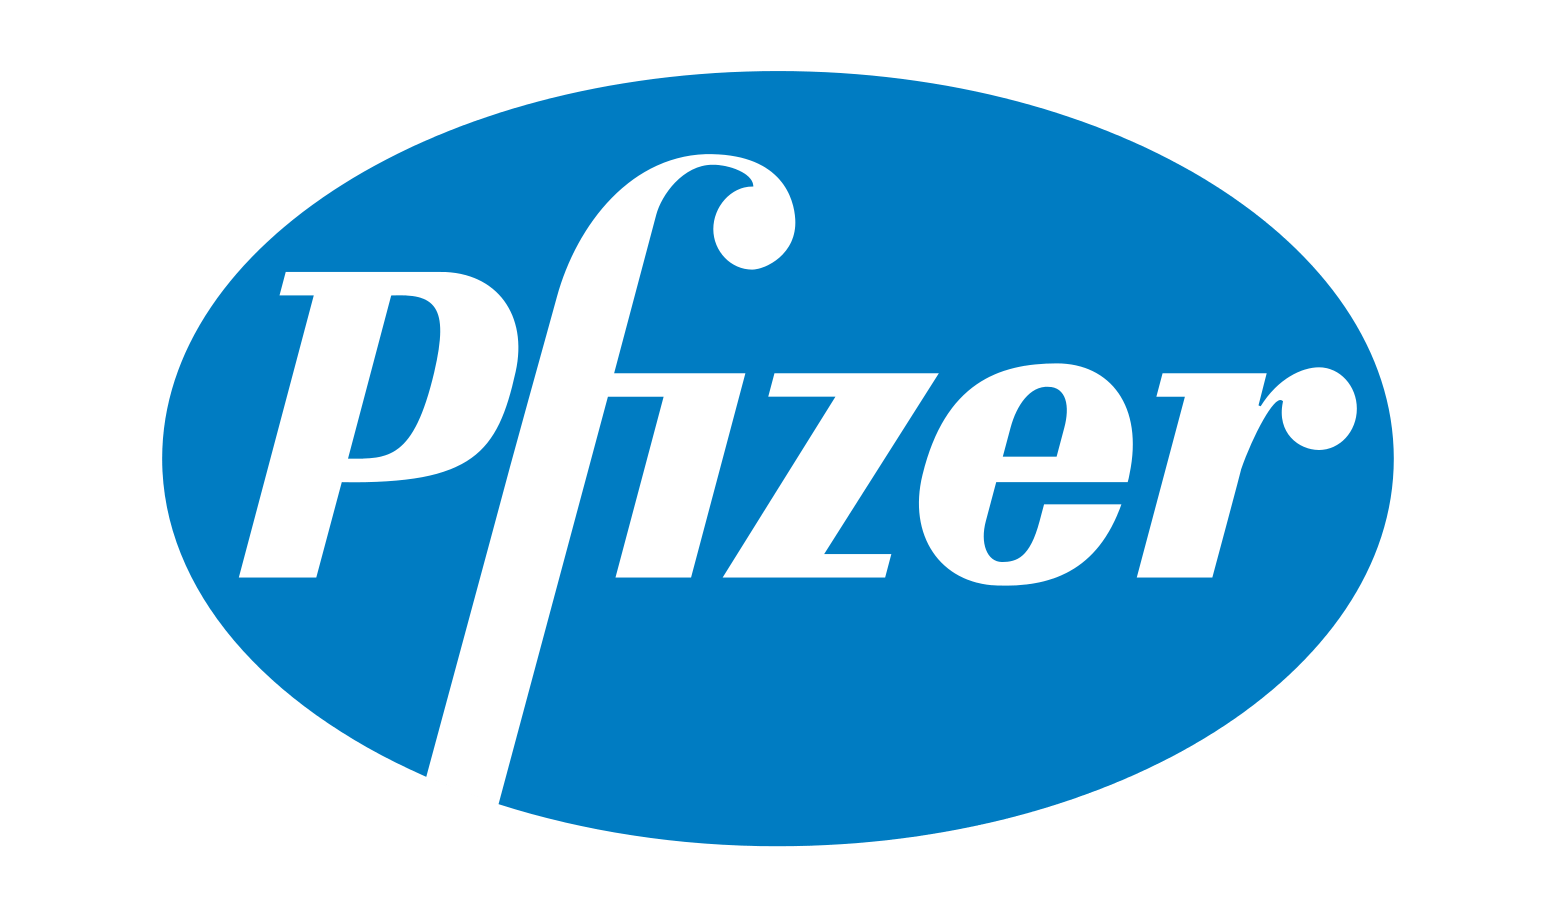 Pfizer - Business Analysis